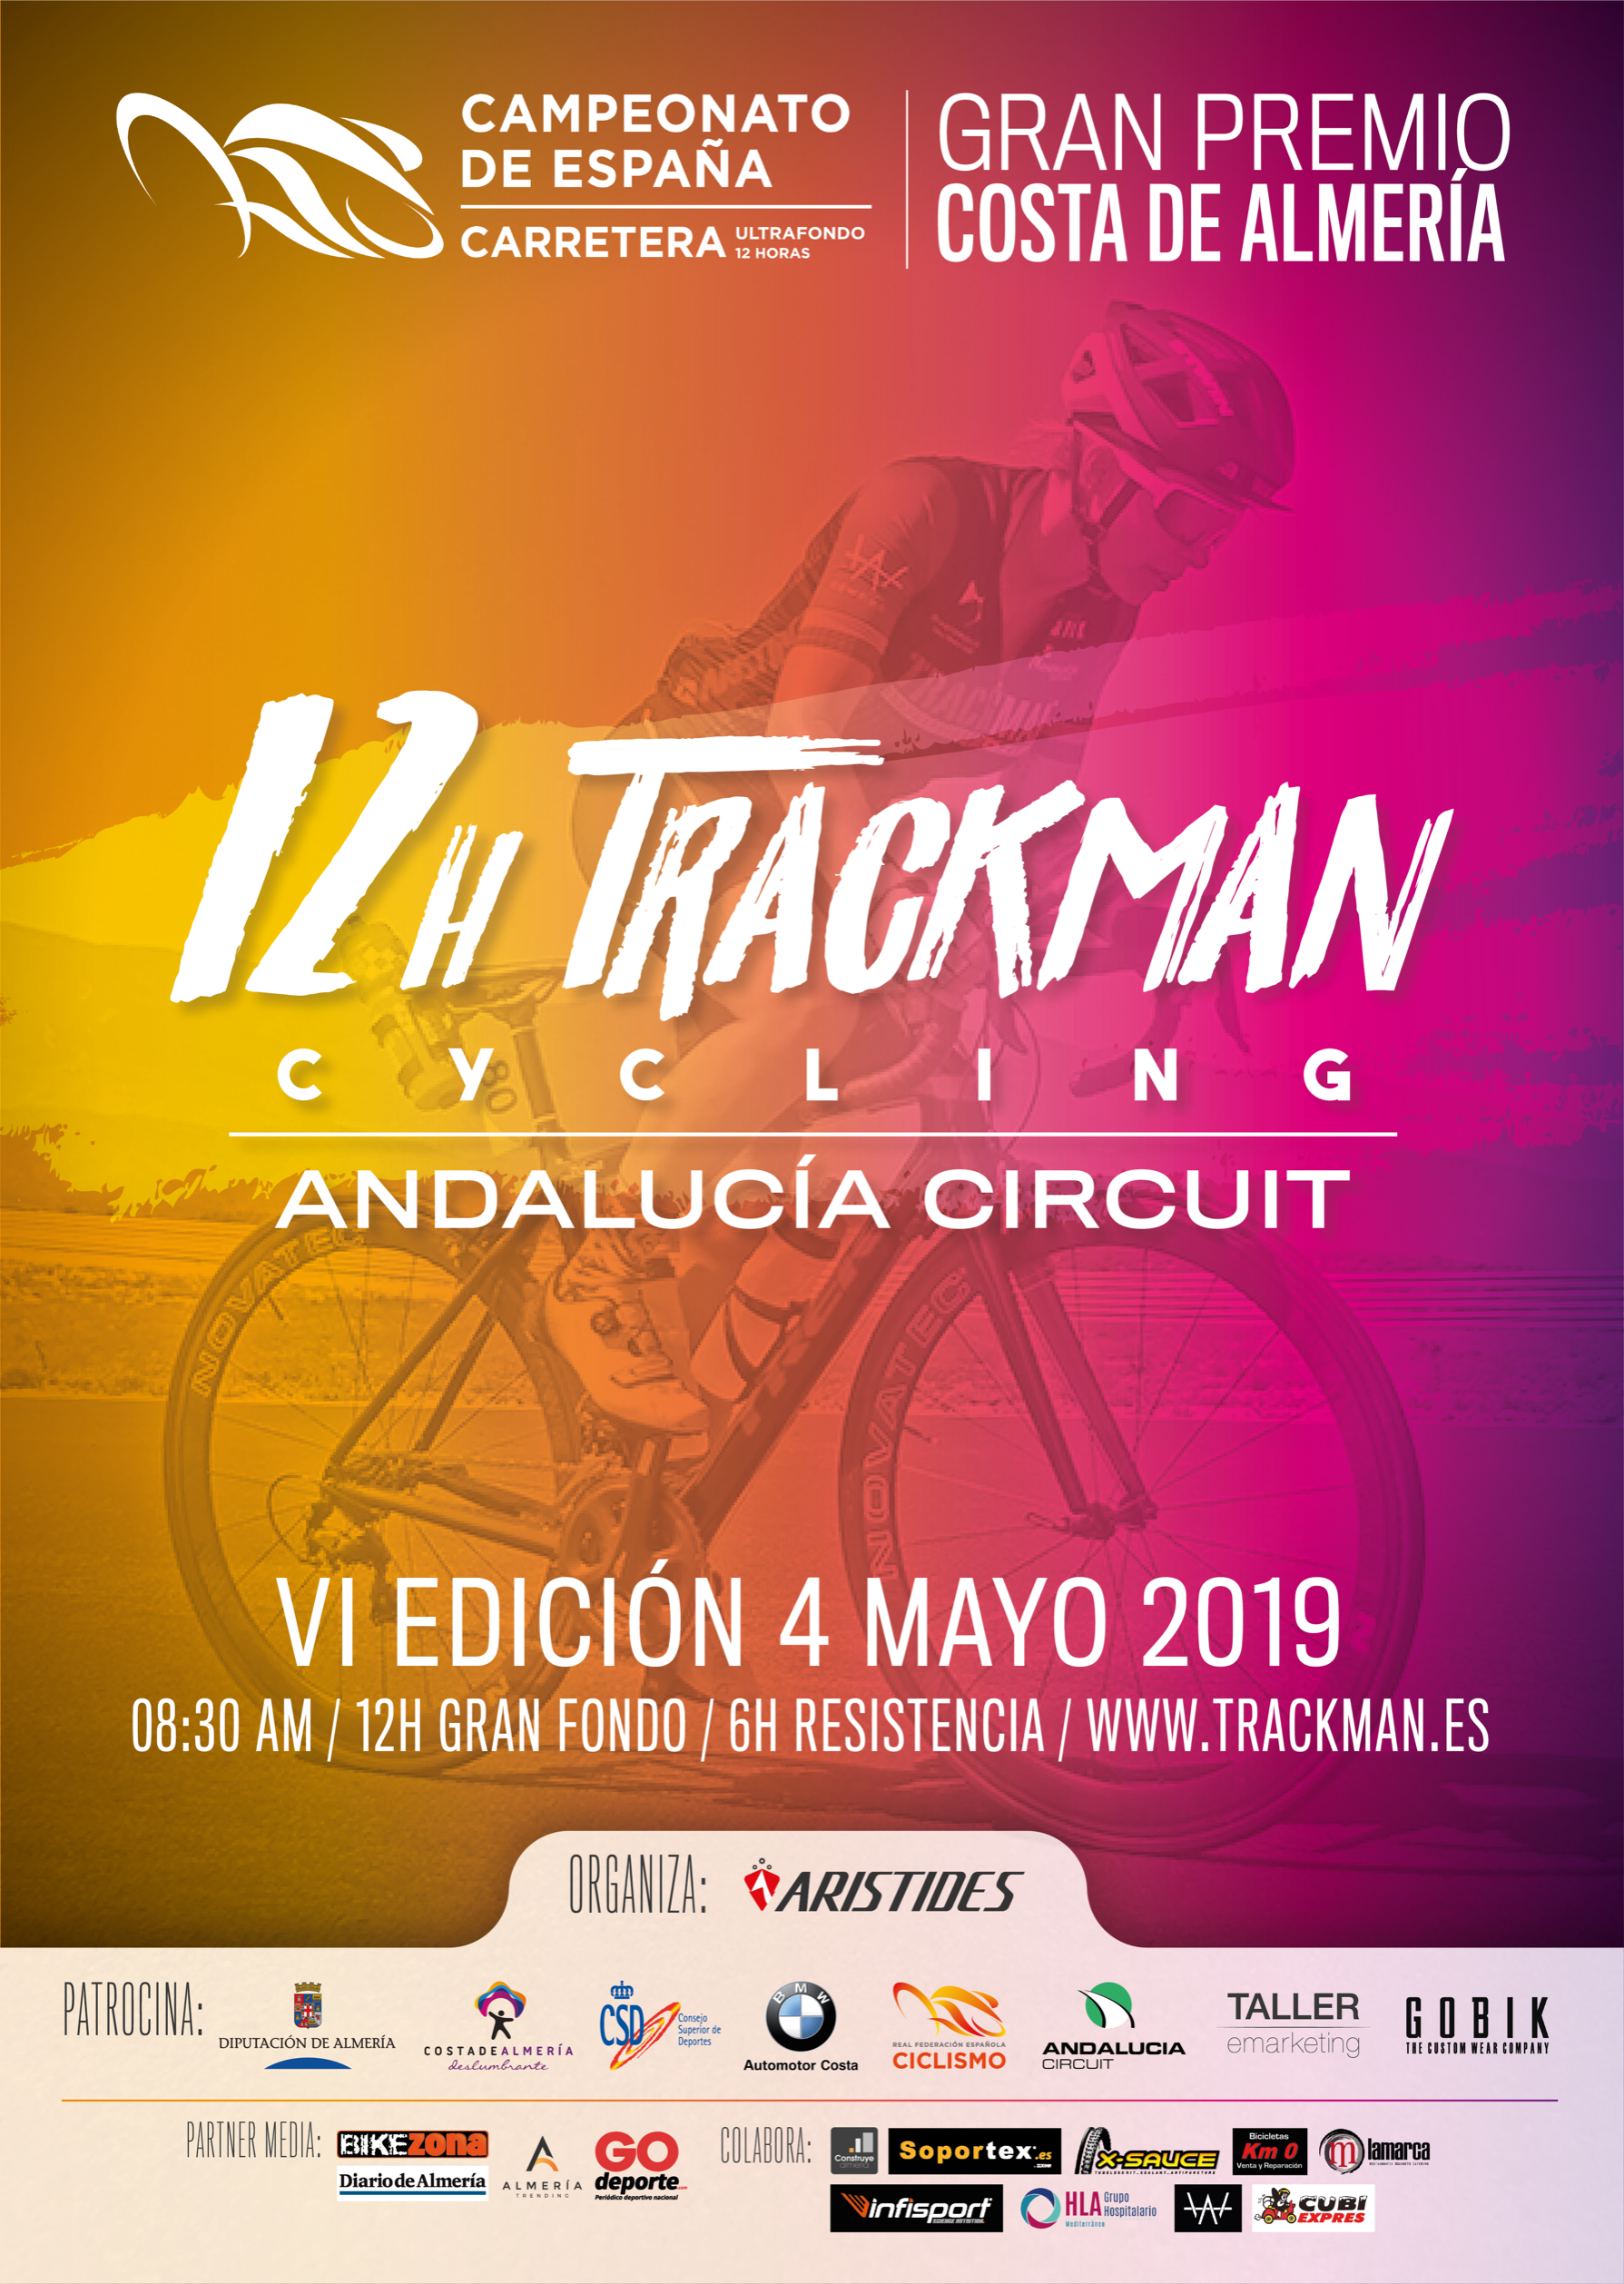 VI 12H Trackman Cycling Andalucia Circuit 2019